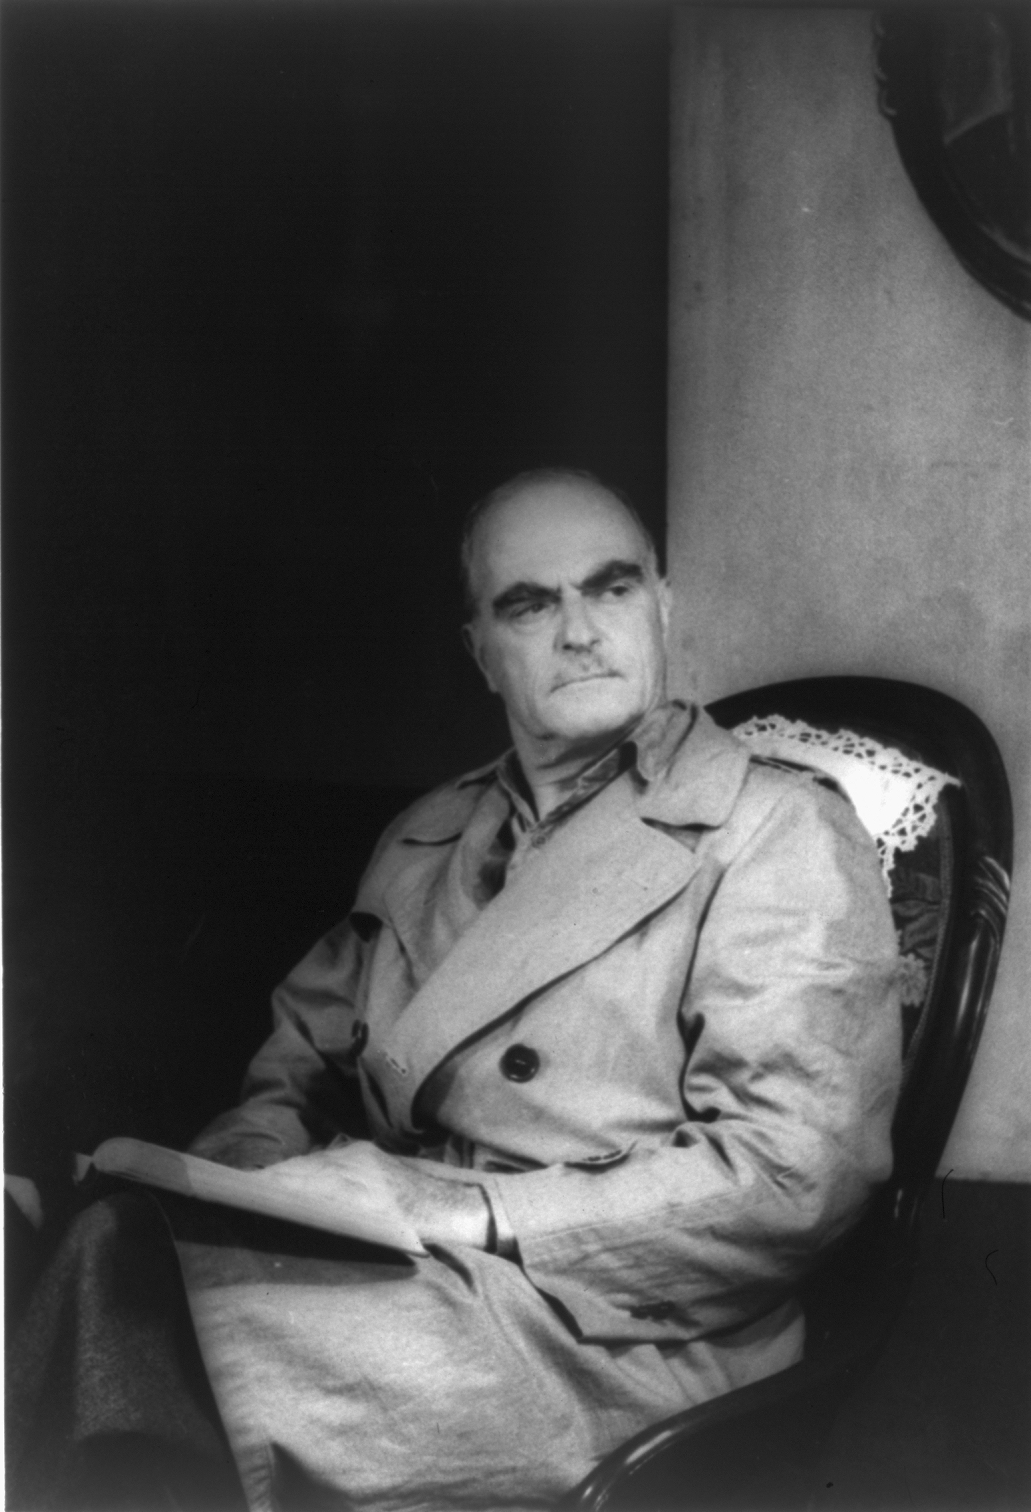 Thornton Wilder as Mr. Antrobus in ''The Skin of Our Teeth'', photogram by [[Carl Van Vechten]], August 18, 1948